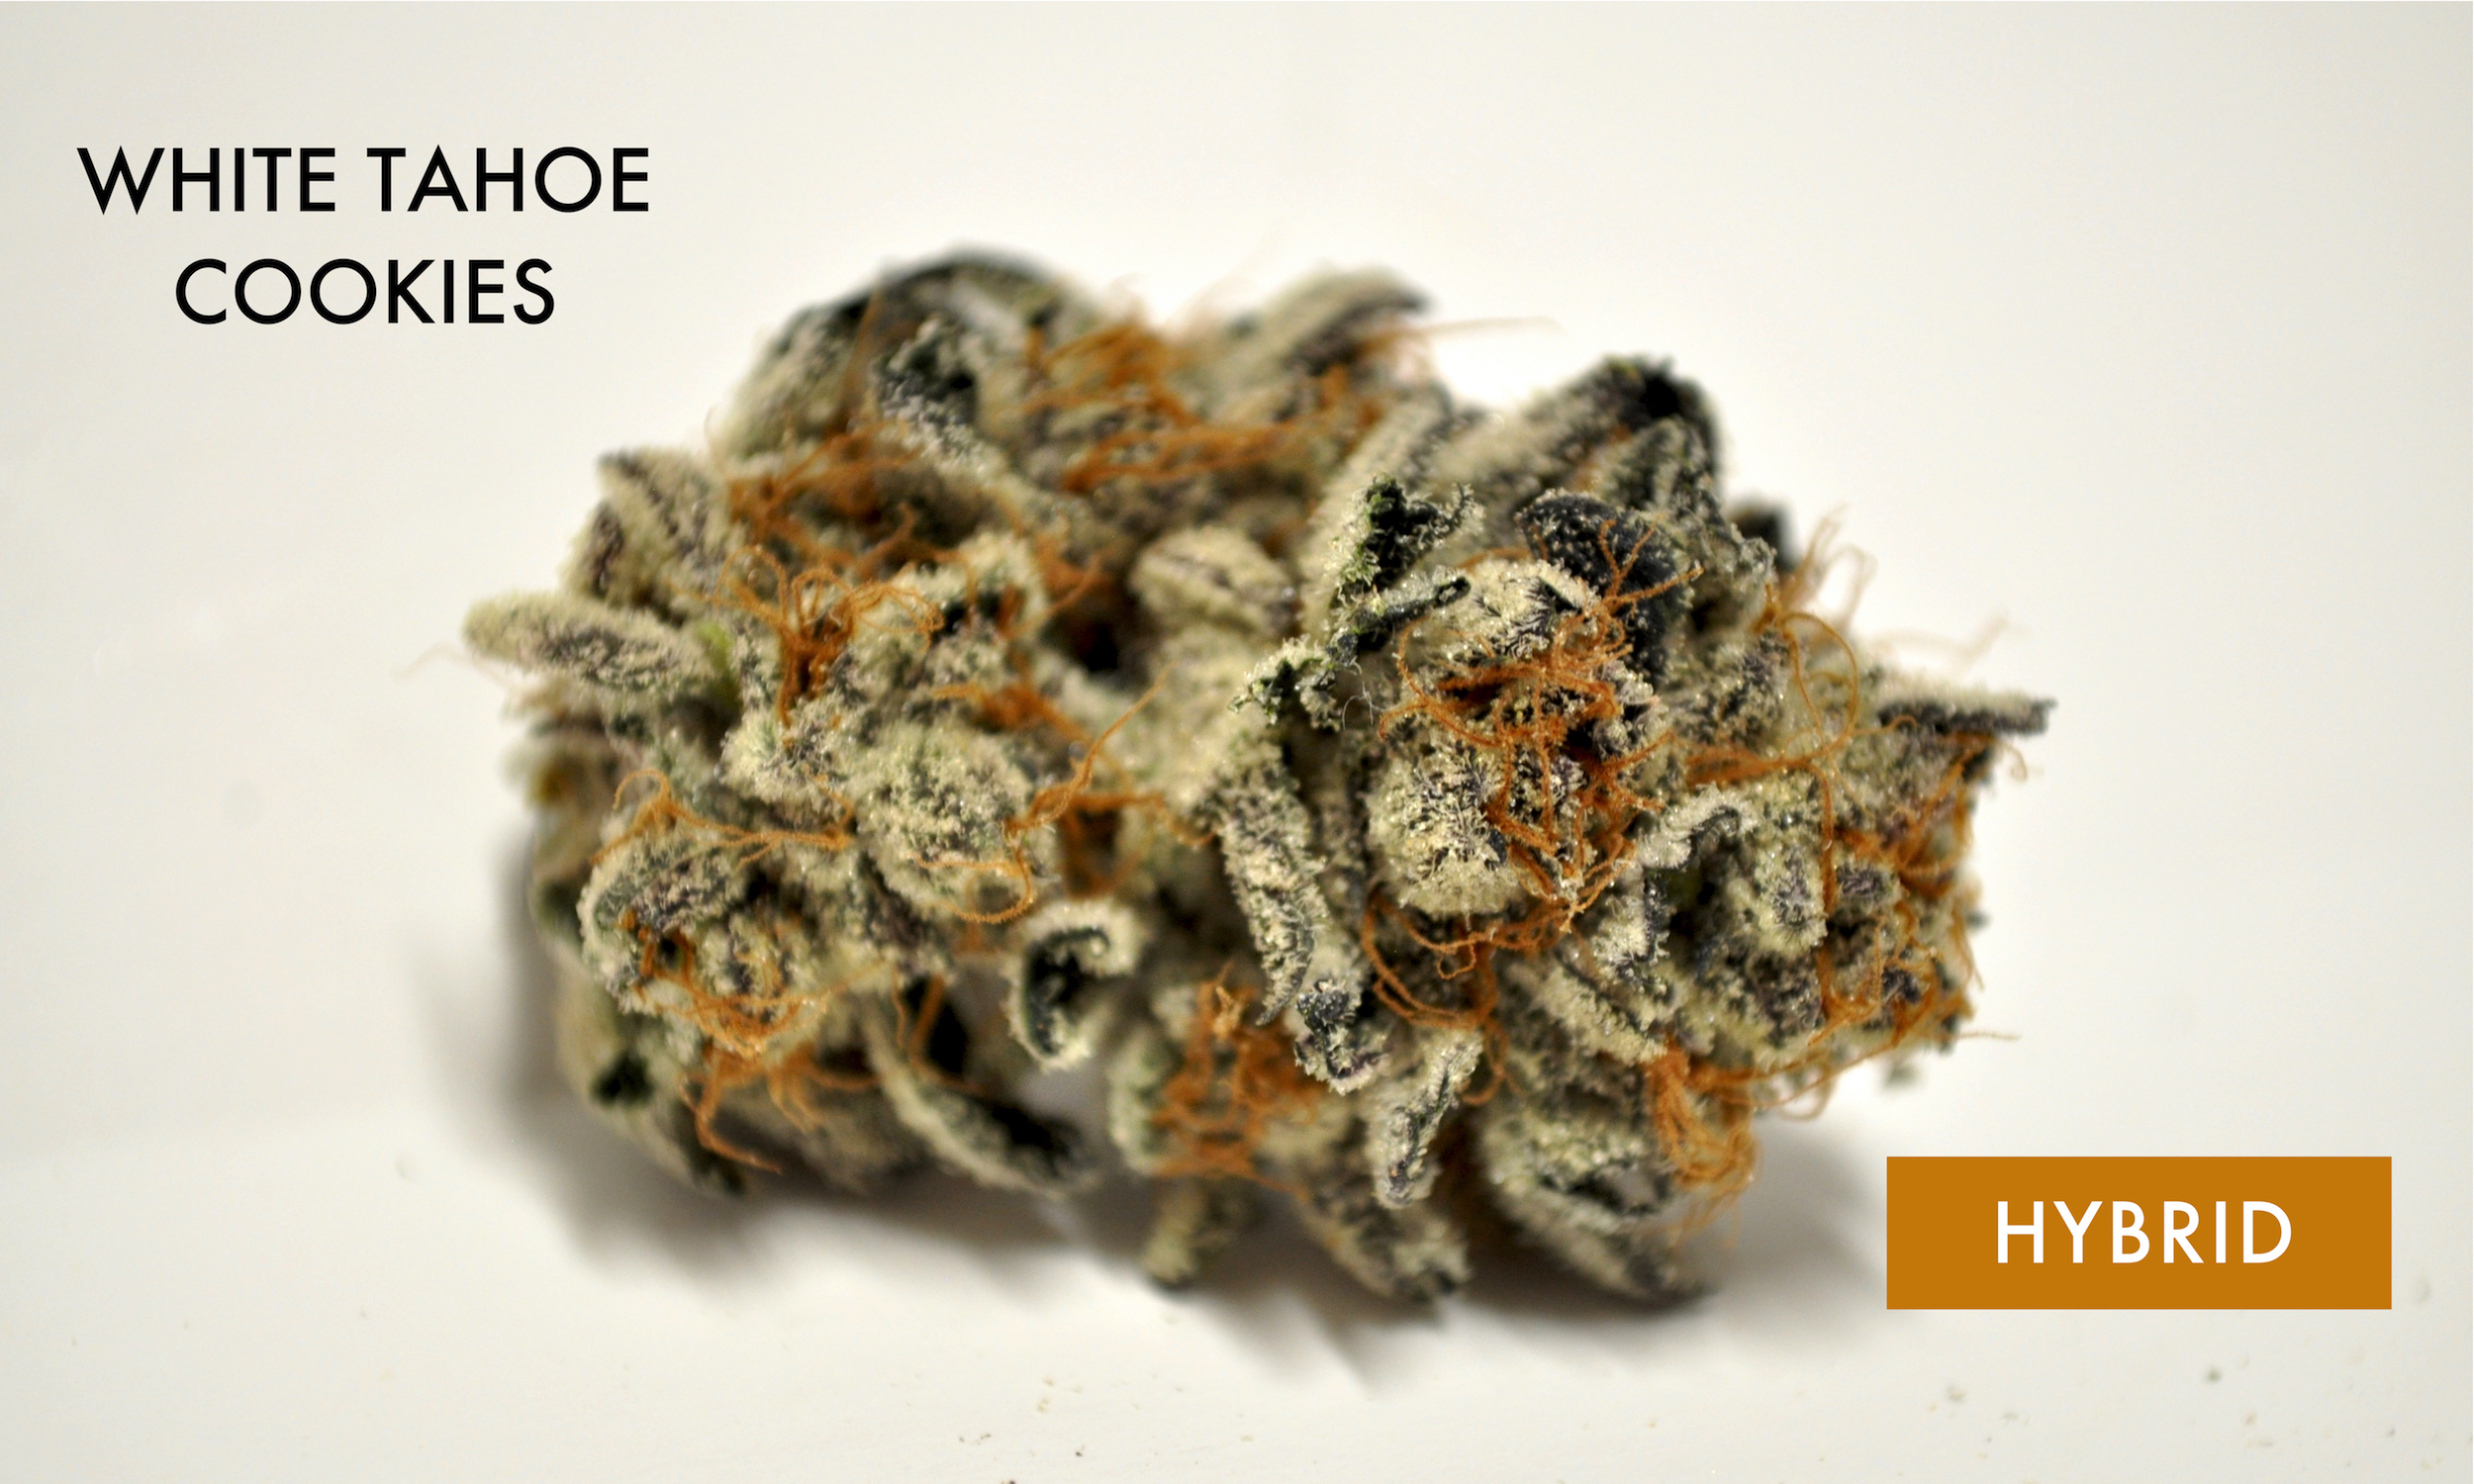 White Tahoe Cookies - 75% Indicais an indica-dominant strain created by Kush4Breakfast and distributed by Archive Seed Bank. This strain is a blend of The White, Tahoe OG, and an unknown Girl Scout Cookies cut, and exemplifies attributes of each in trichome coverage, effect, and aroma. The GSC bouquet has been enhanced through this cross, offering up sweeter, hashier notes with distant OG undertones. Its restful effects pile on with each hit, weighing the consumer to their seat while alleviating minor pain and anxiety.